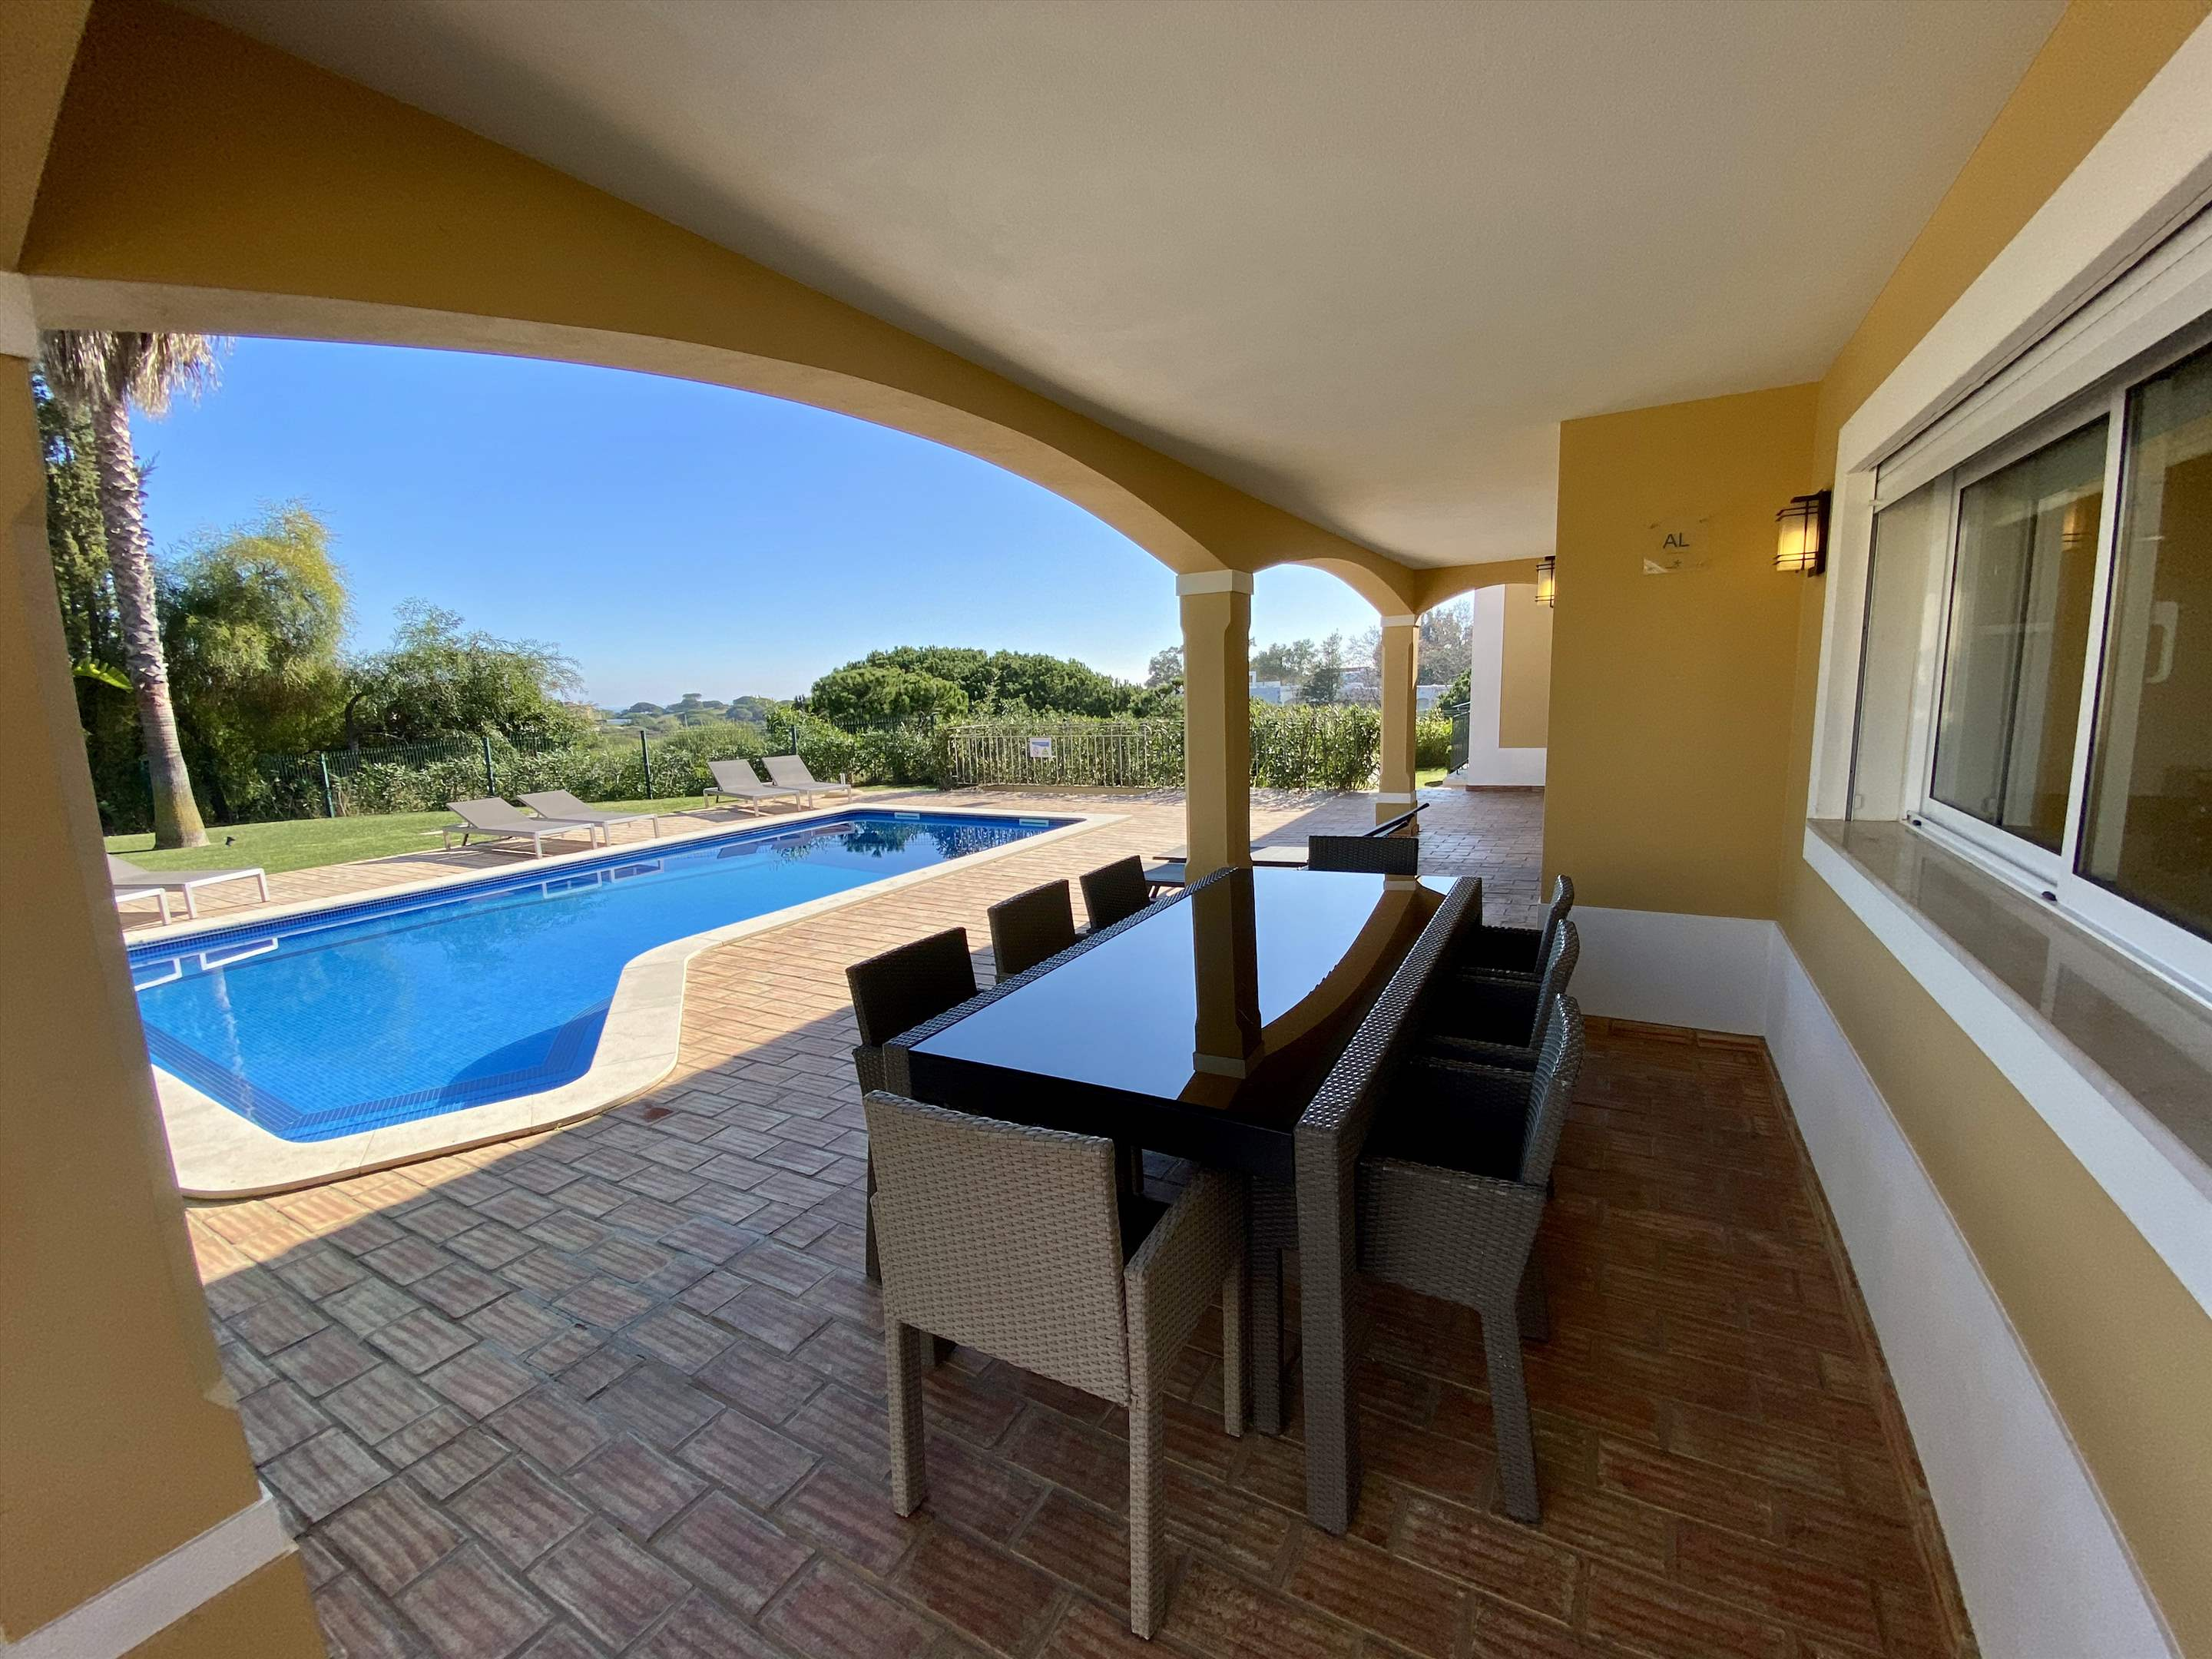 The Ocean Villas, 5 bedroom villa in Gale, Vale da Parra and Guia, Algarve Photo #8